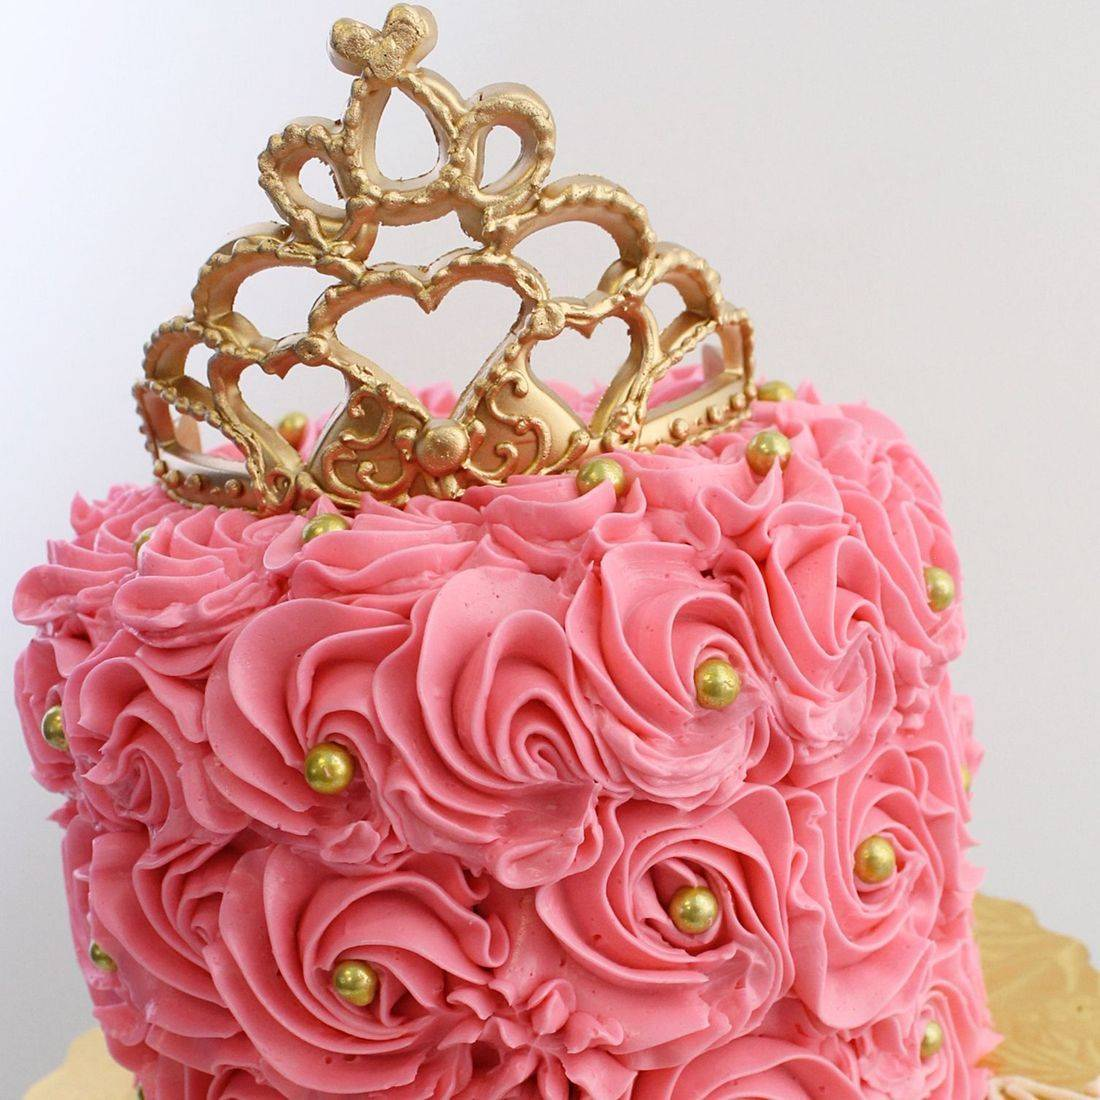 rosettes gold crown stylized cakes milwaukee